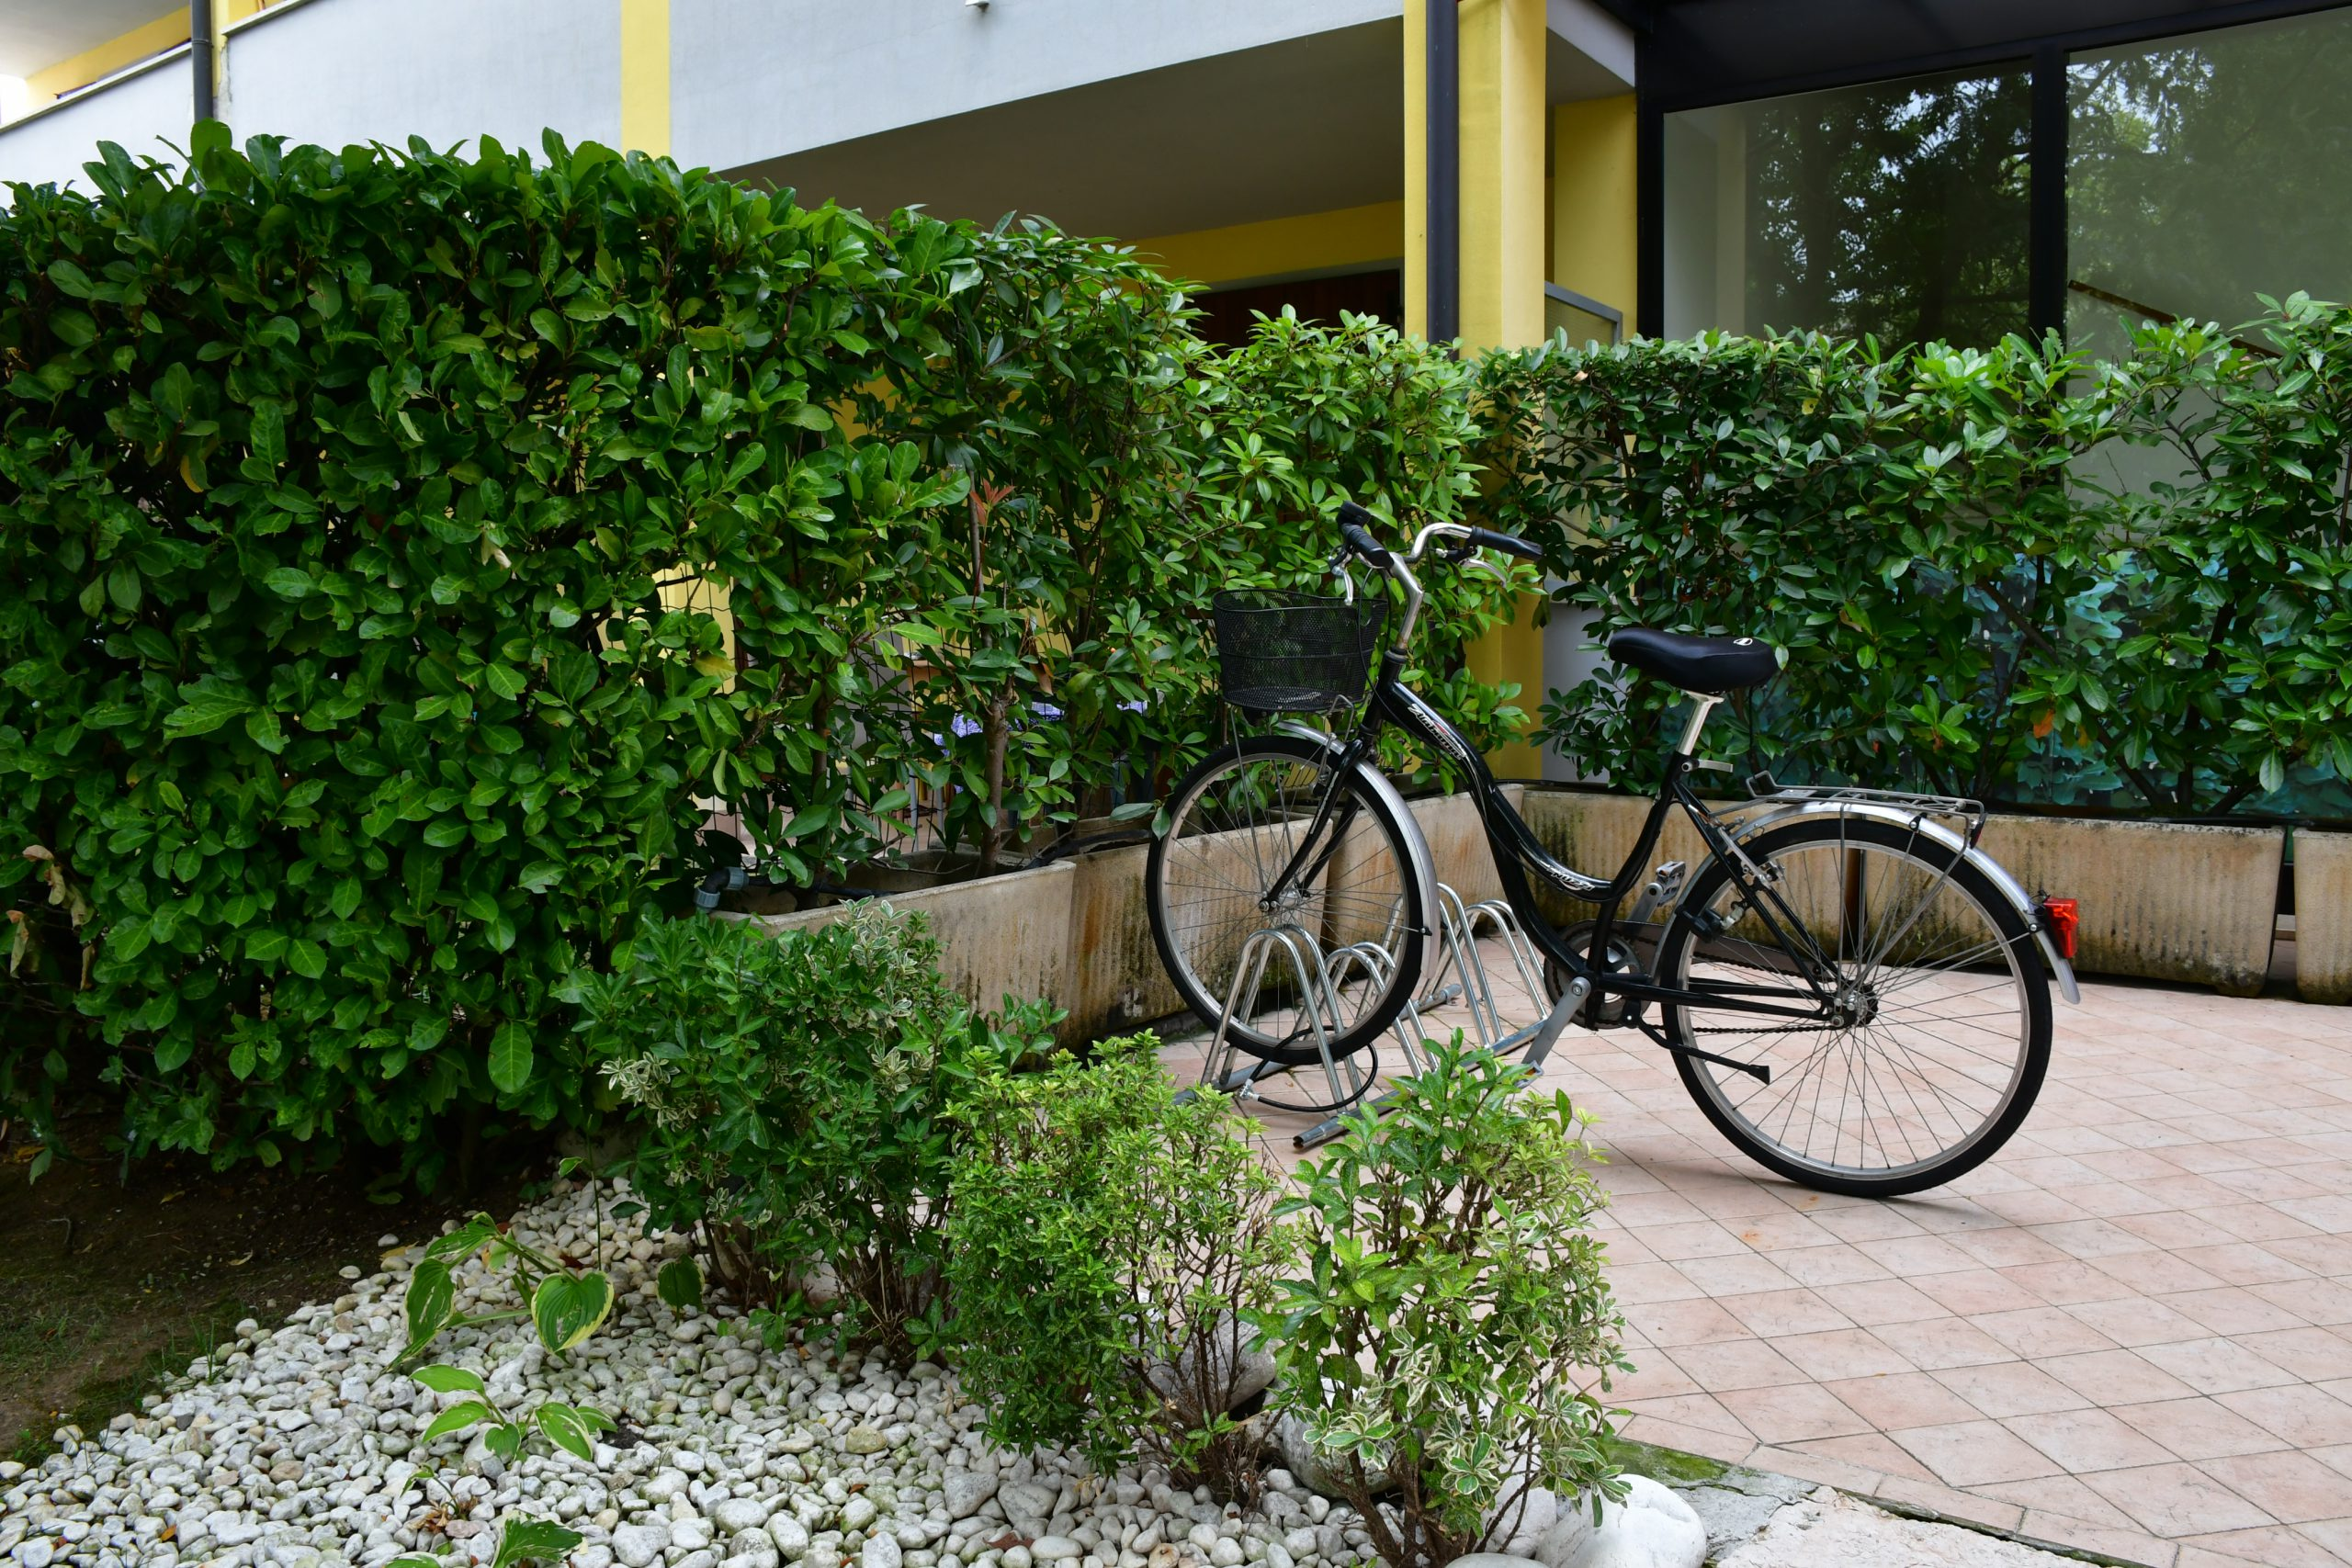 SIMONA'S HOME Apartment in Desenzano and Sirmione - Exterior Bike shelter